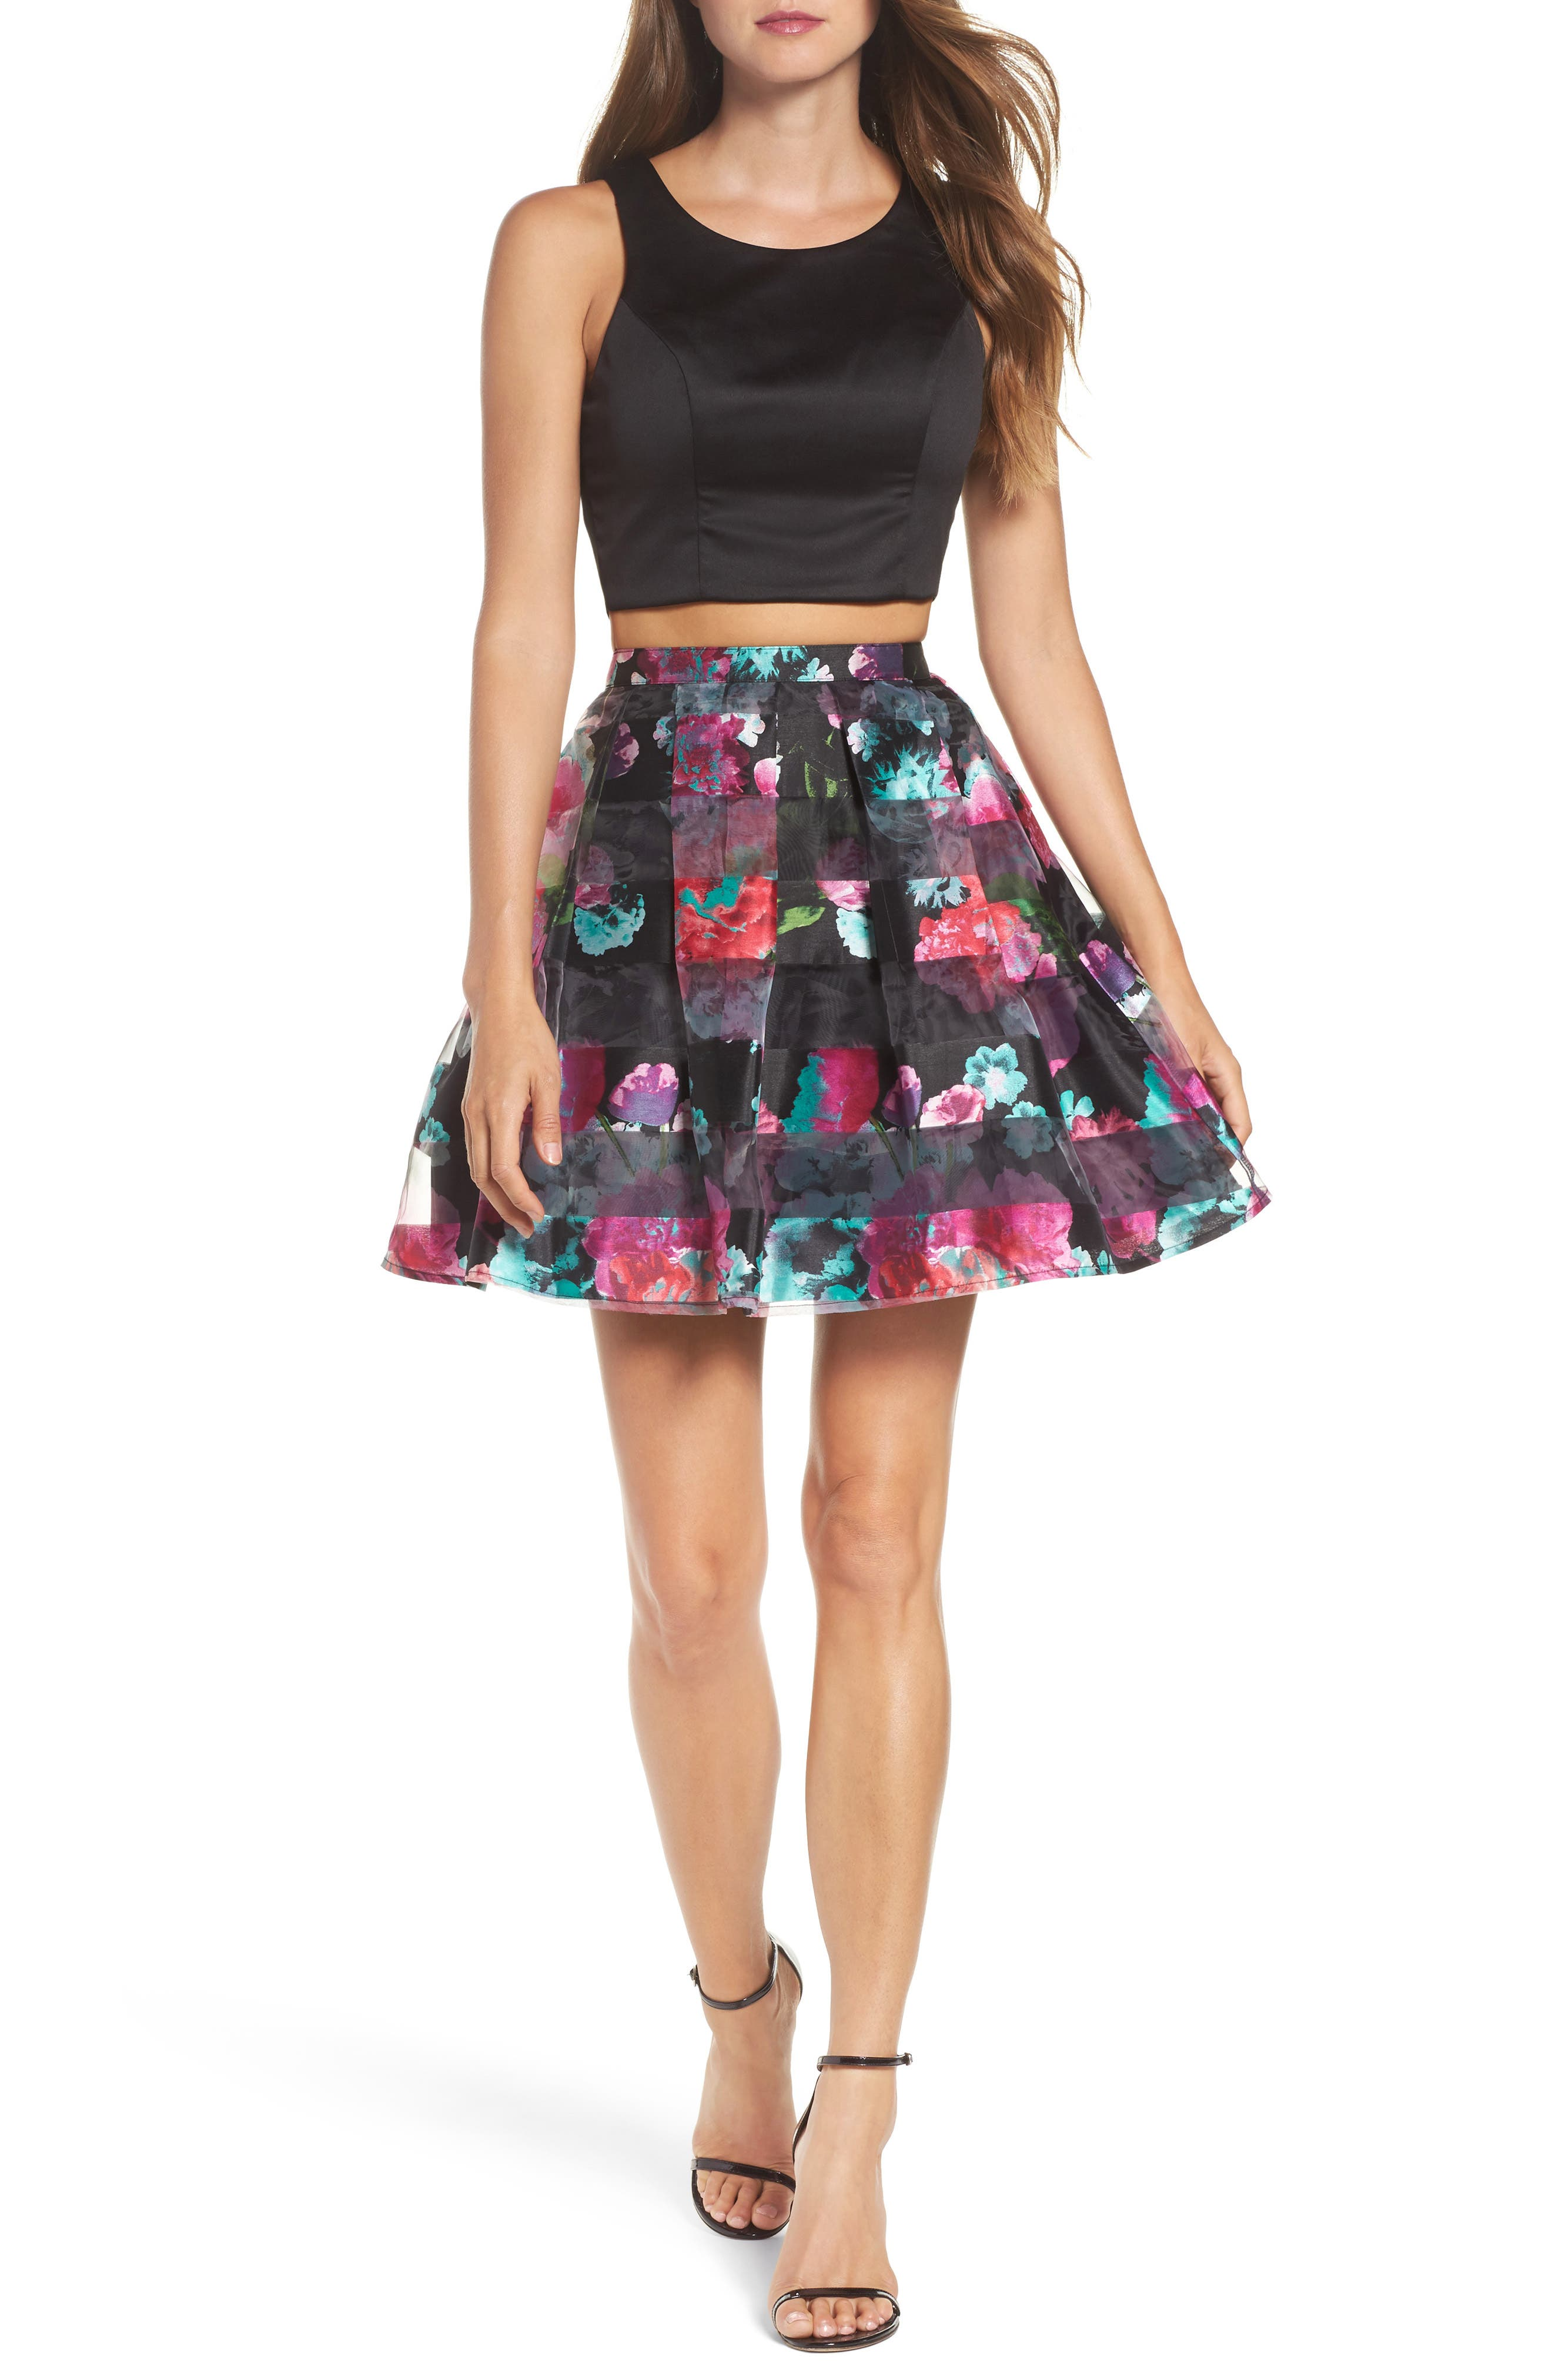 Sequin Hearts Printed Shadow Skirt Two-Piece Fit & Flare Dress